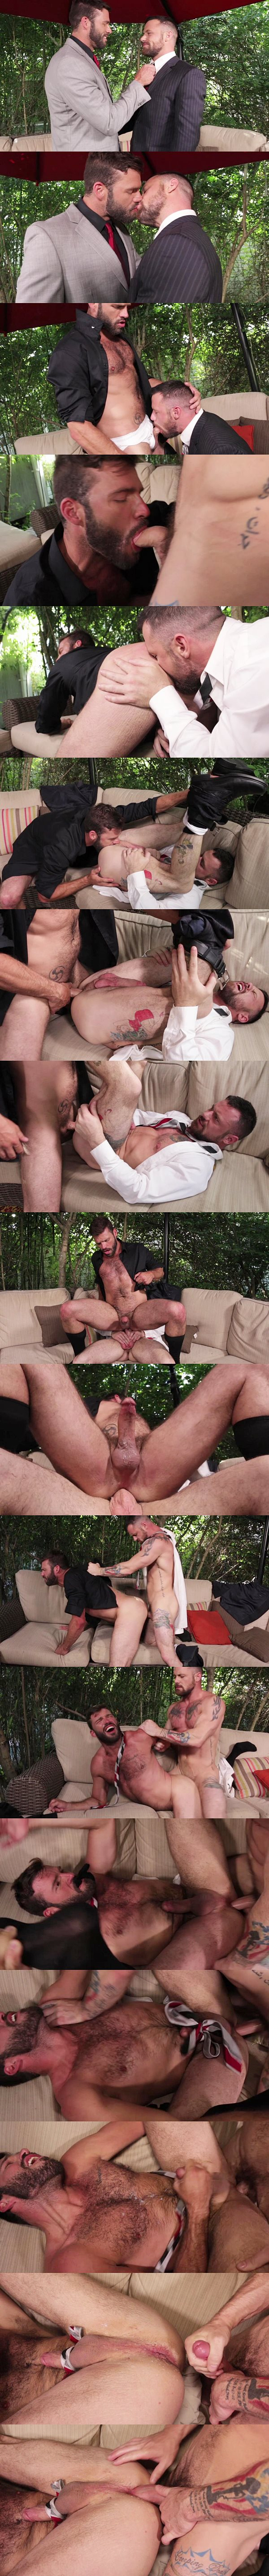 Xavier Jacobs and Sergeant Miles bareback flip-fuck until Sergeant breeds Xavier at Lucasentertainment 02